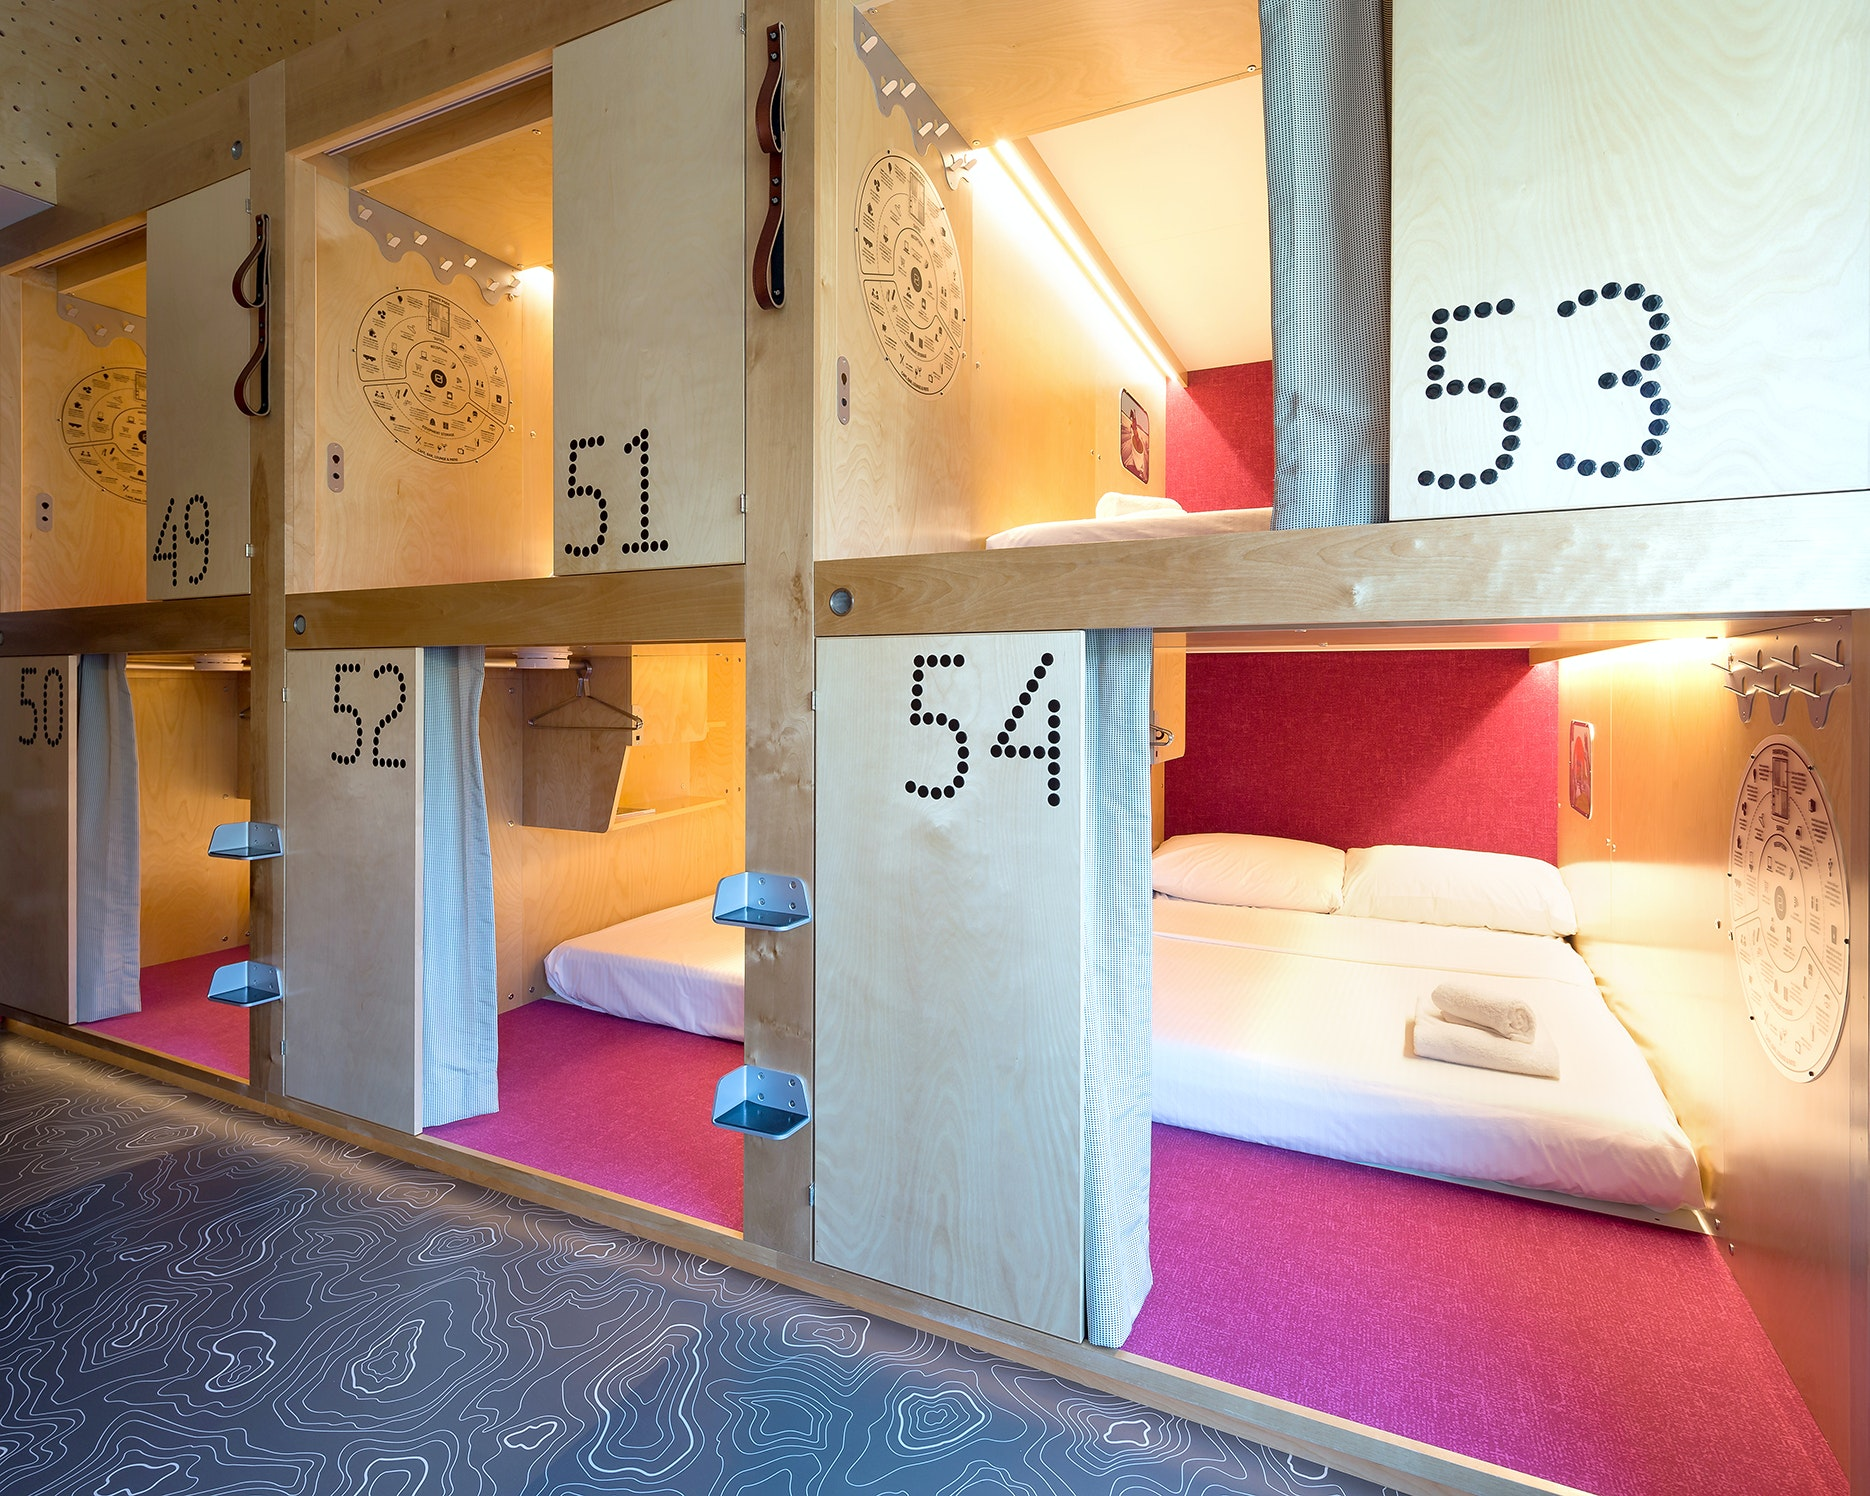 Pangea is a micro-hotel in Whistler, British Columbia.